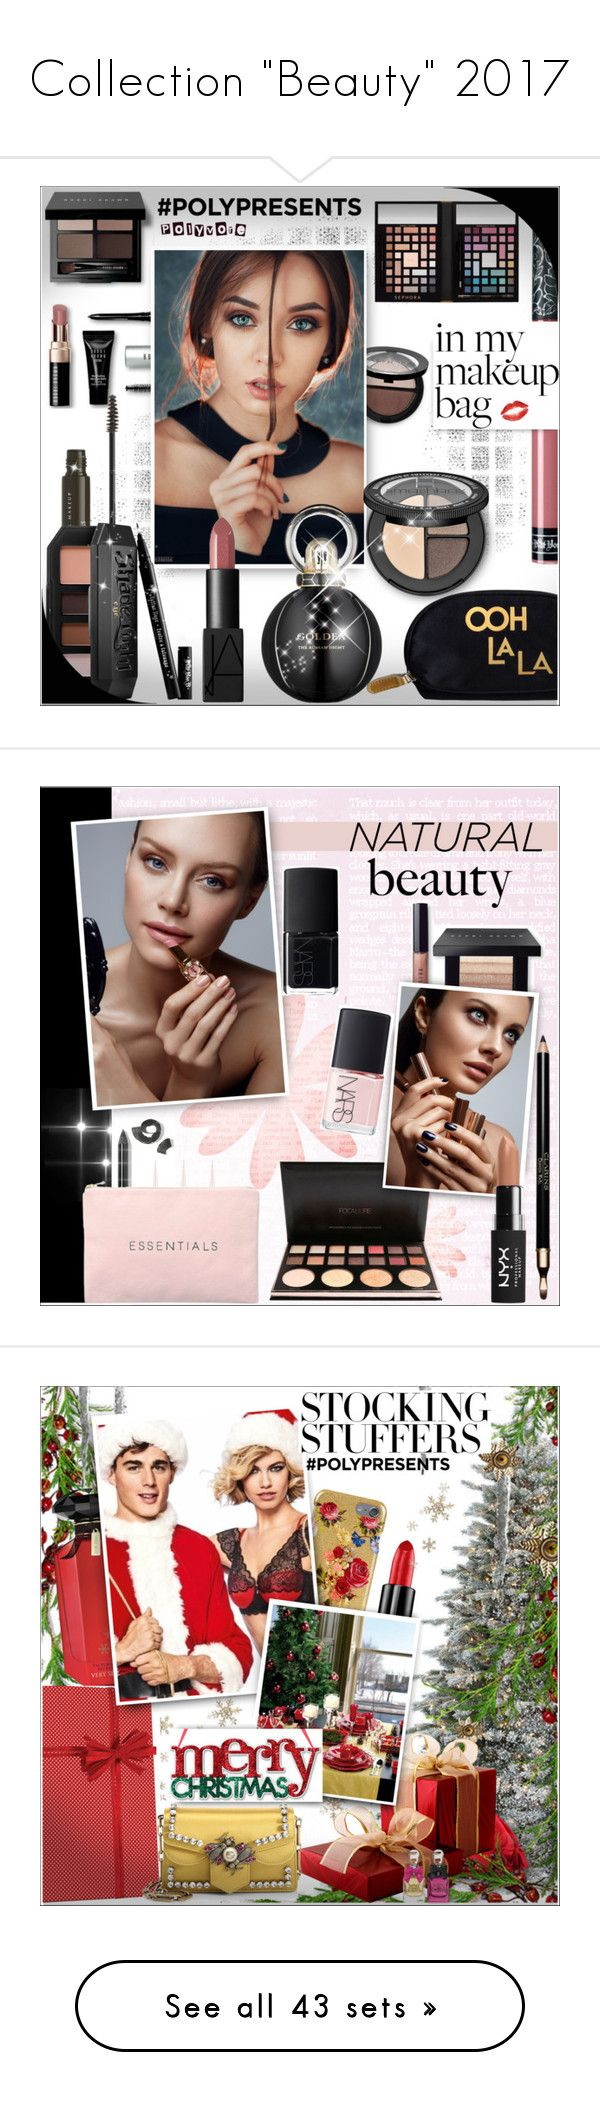 """""""Collection """"Beauty"""" 2017"""" by alves-nogueira ❤ liked on Polyvore featuring Beauty, makeup, beauty, Bobbi Brown Cosmetics, Sephora Collection, Rosanna, NYX, Bulgari, Kat Von D and Christian Louboutin"""